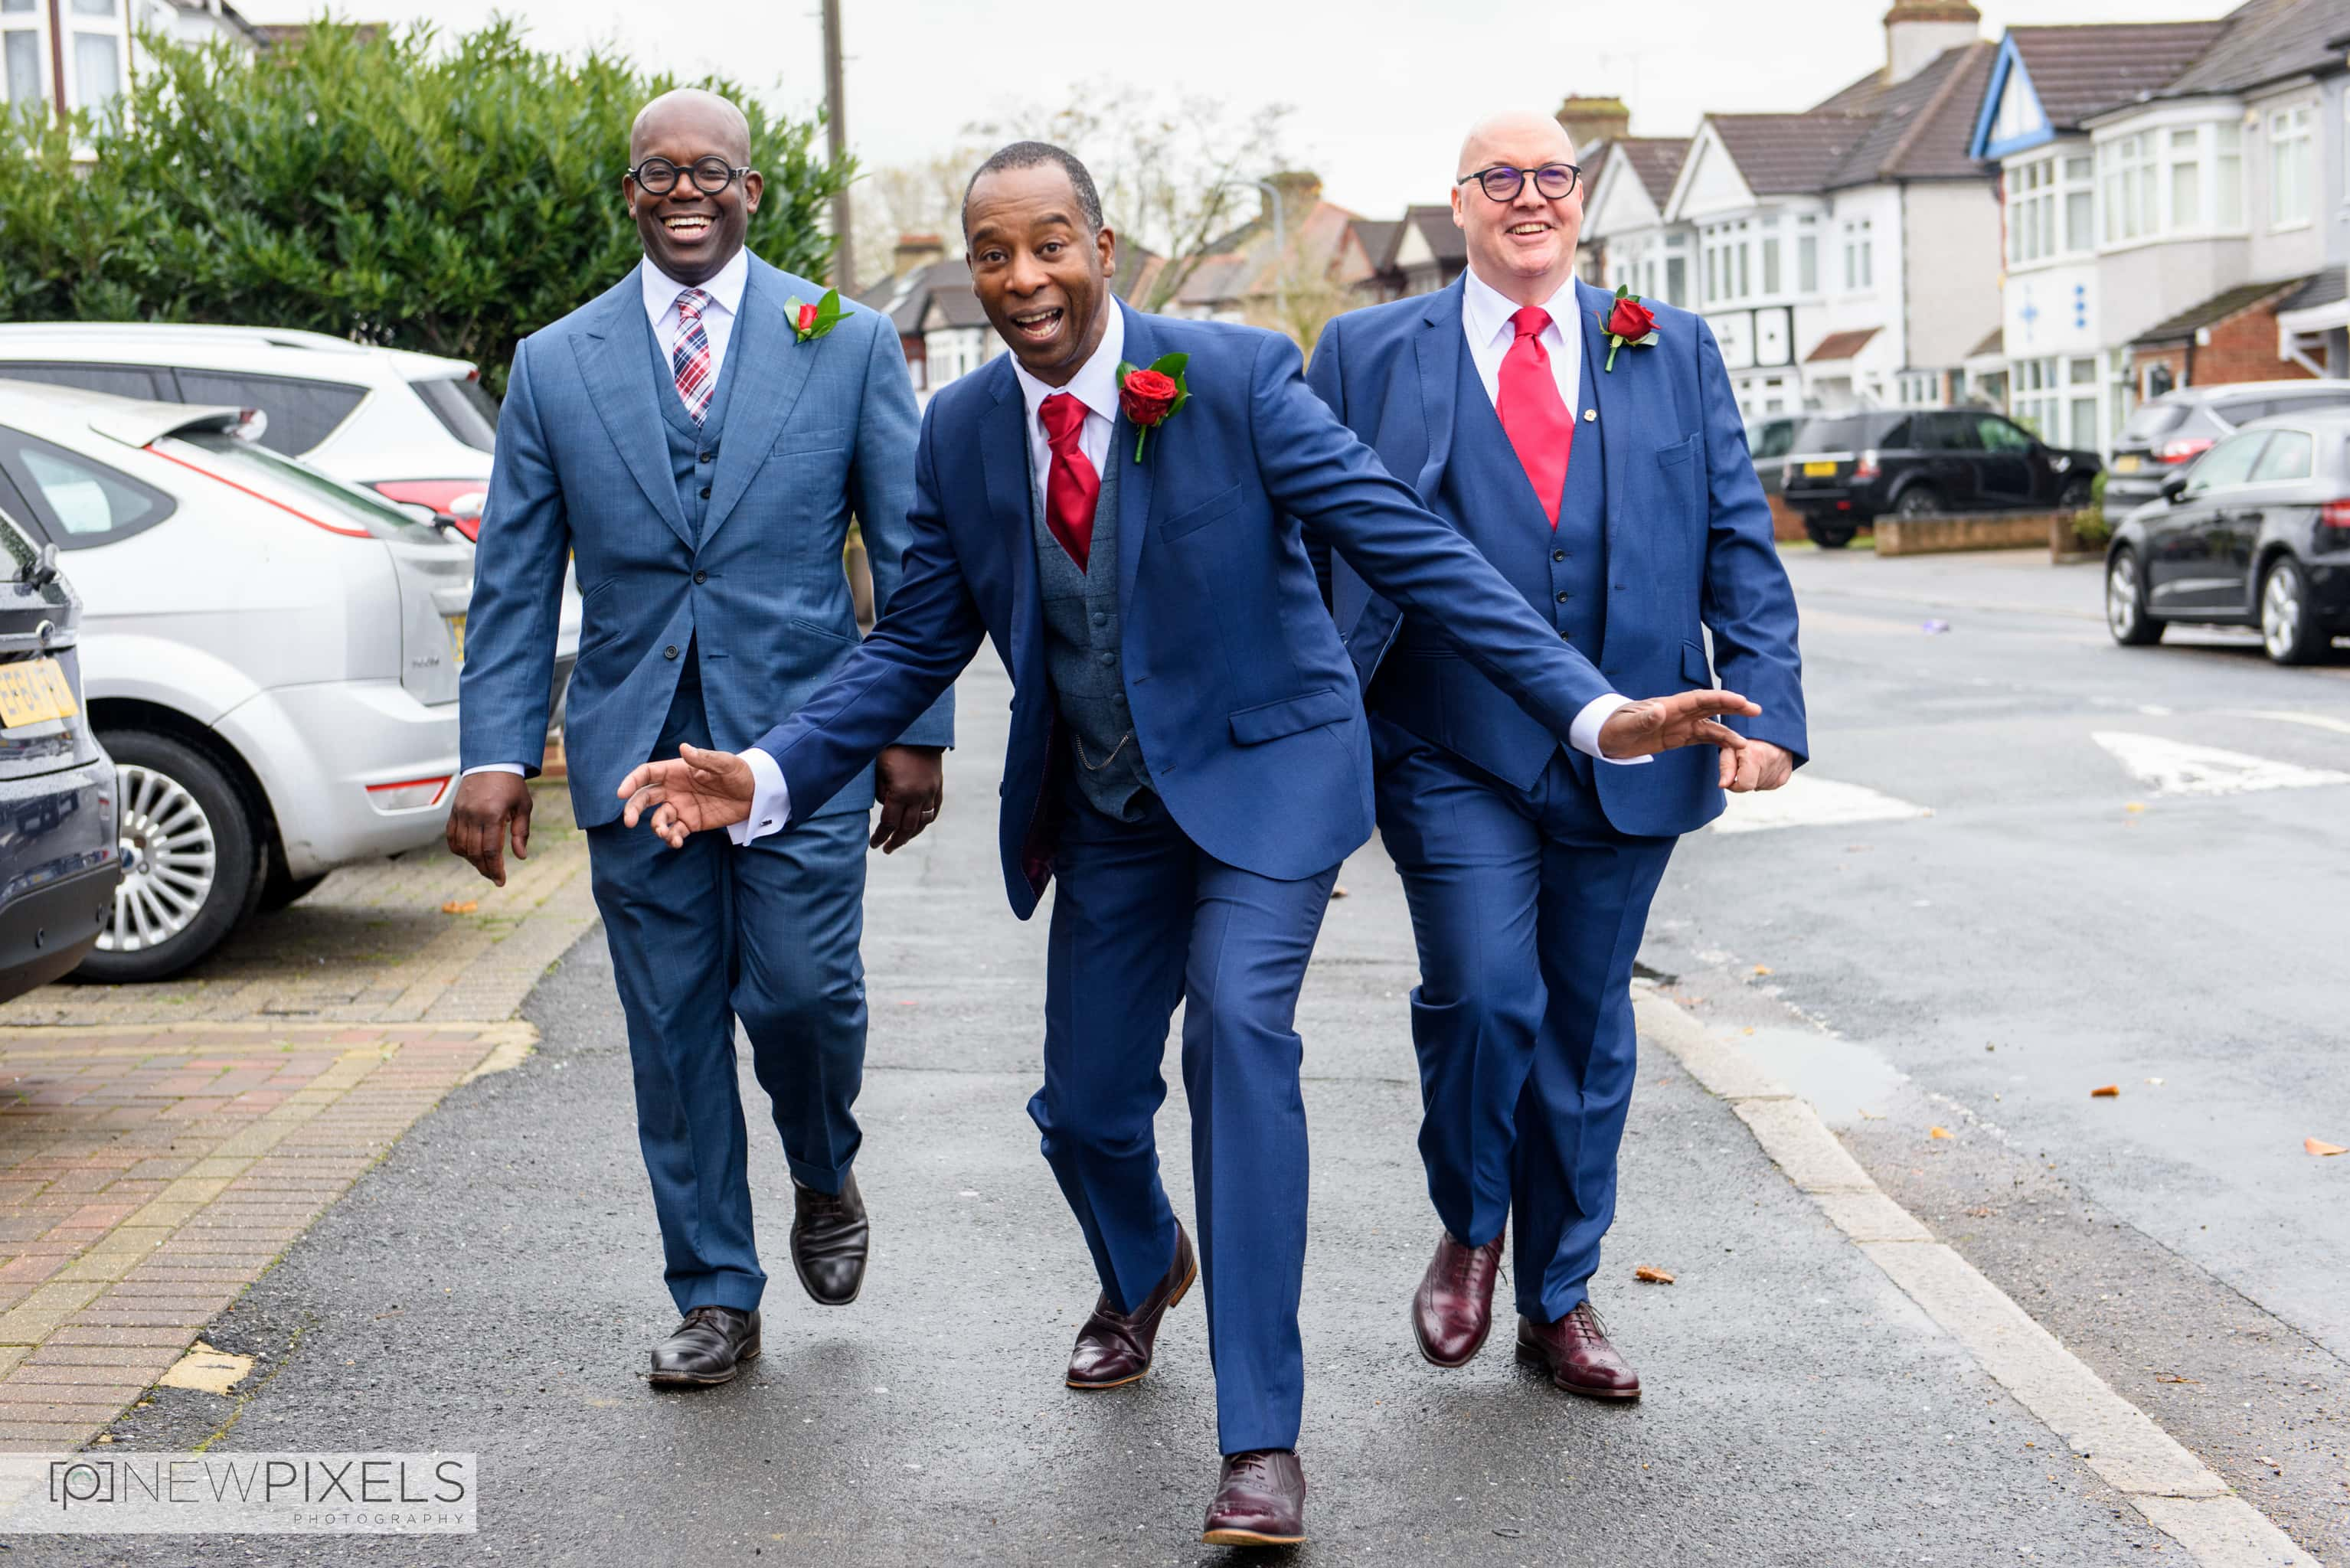 Hertfordshire Wedding Photos-10